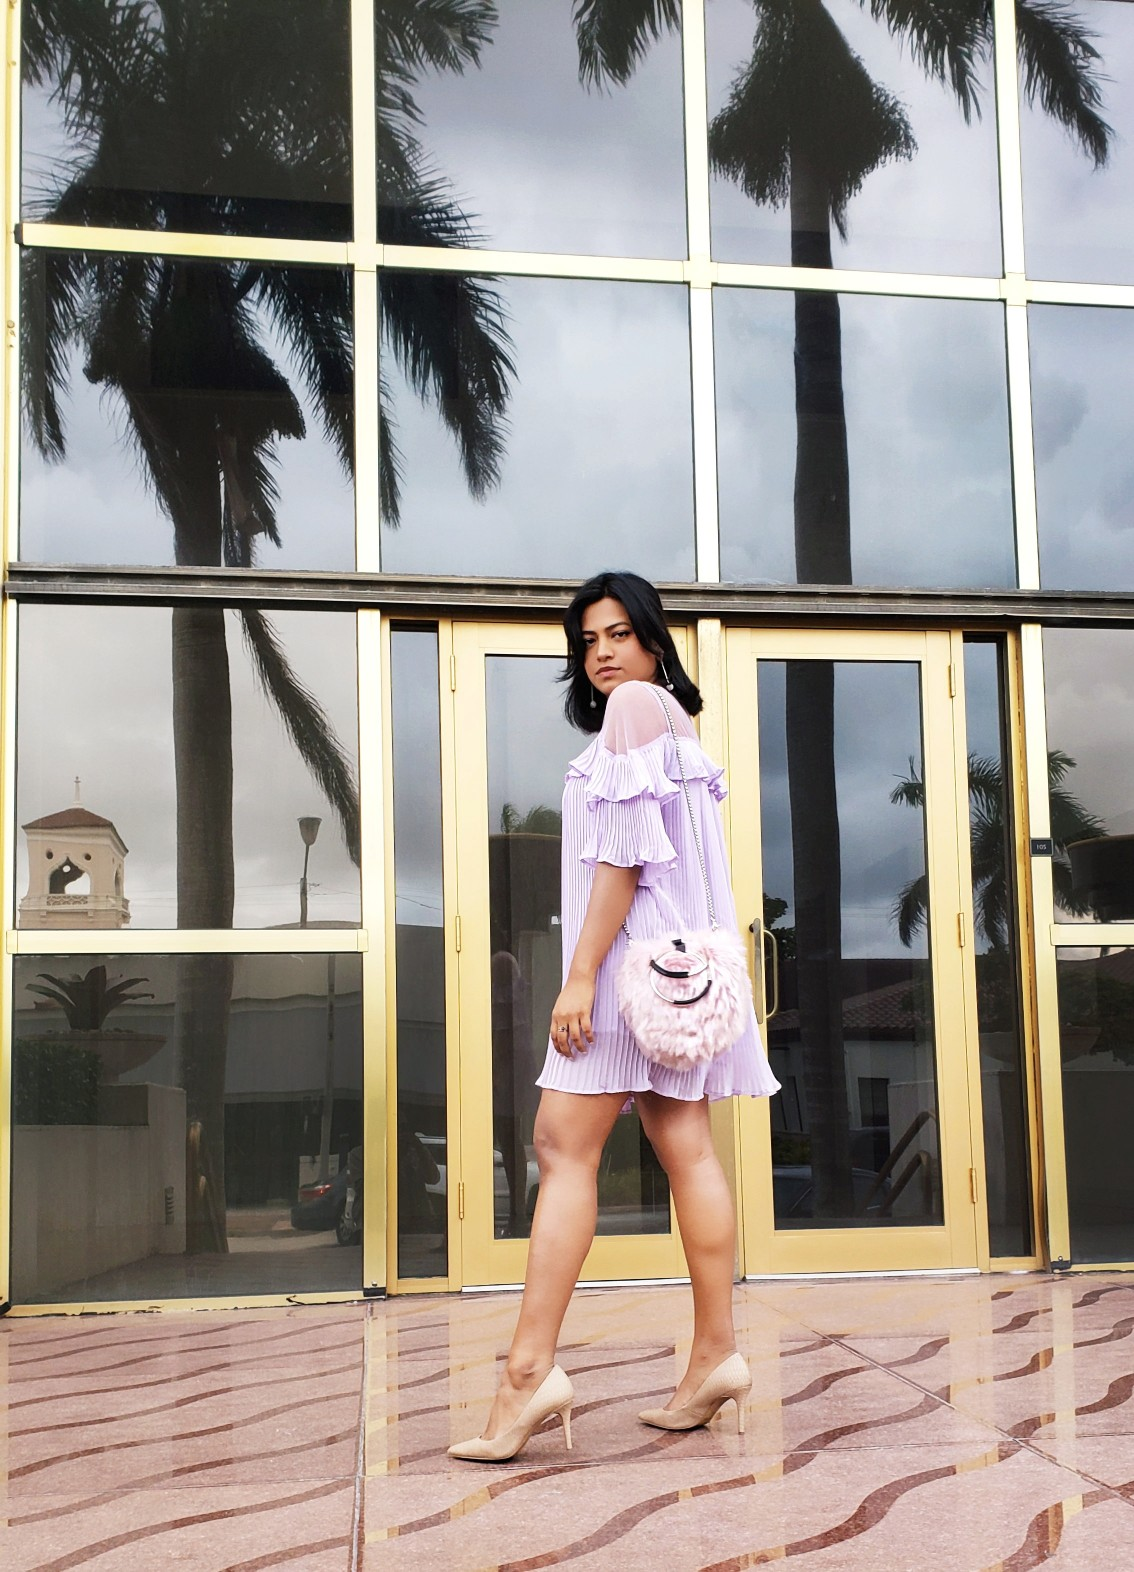 Miami Fashion Blogger in Lavendar, the Grown-Up Pink